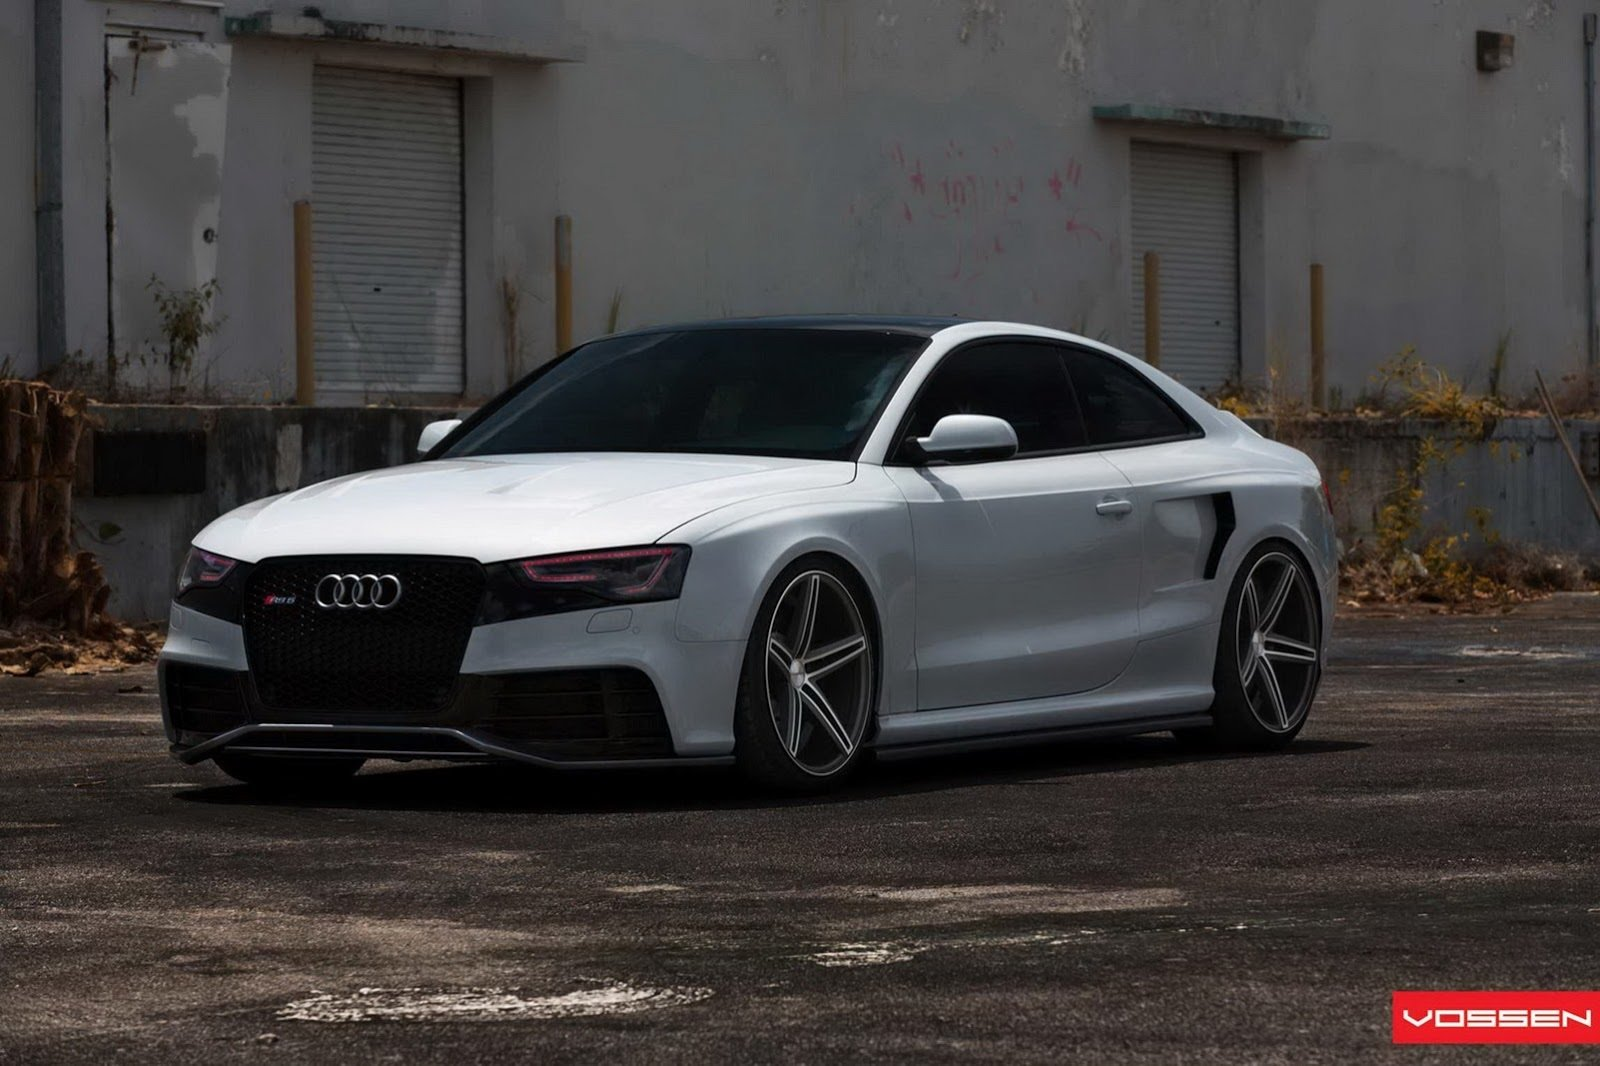 2013 audi rs5 by oss designs review top speed. Black Bedroom Furniture Sets. Home Design Ideas